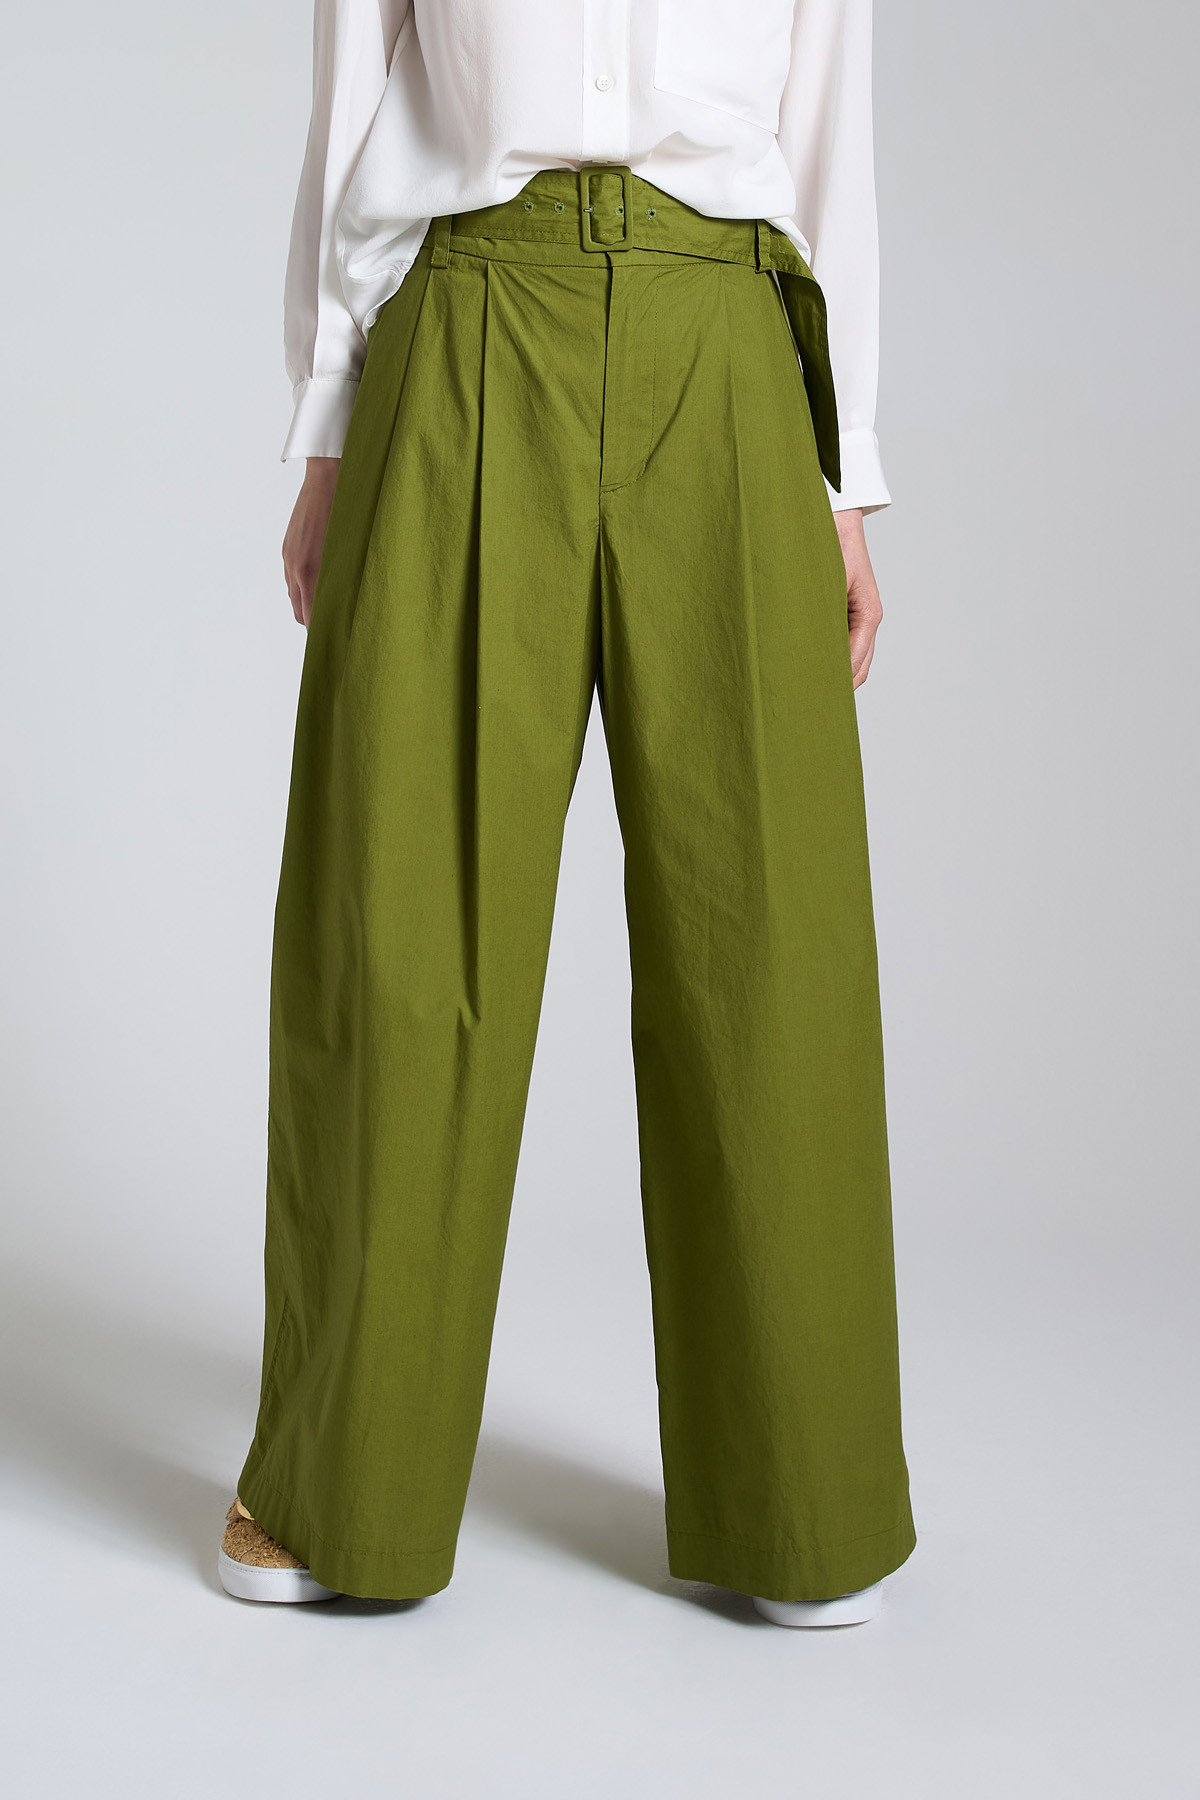 Women's Clothing Soft Popeline Pants with Wide Leg in Green Color Maliparmi | Skirts and Pants | JH74251014360024